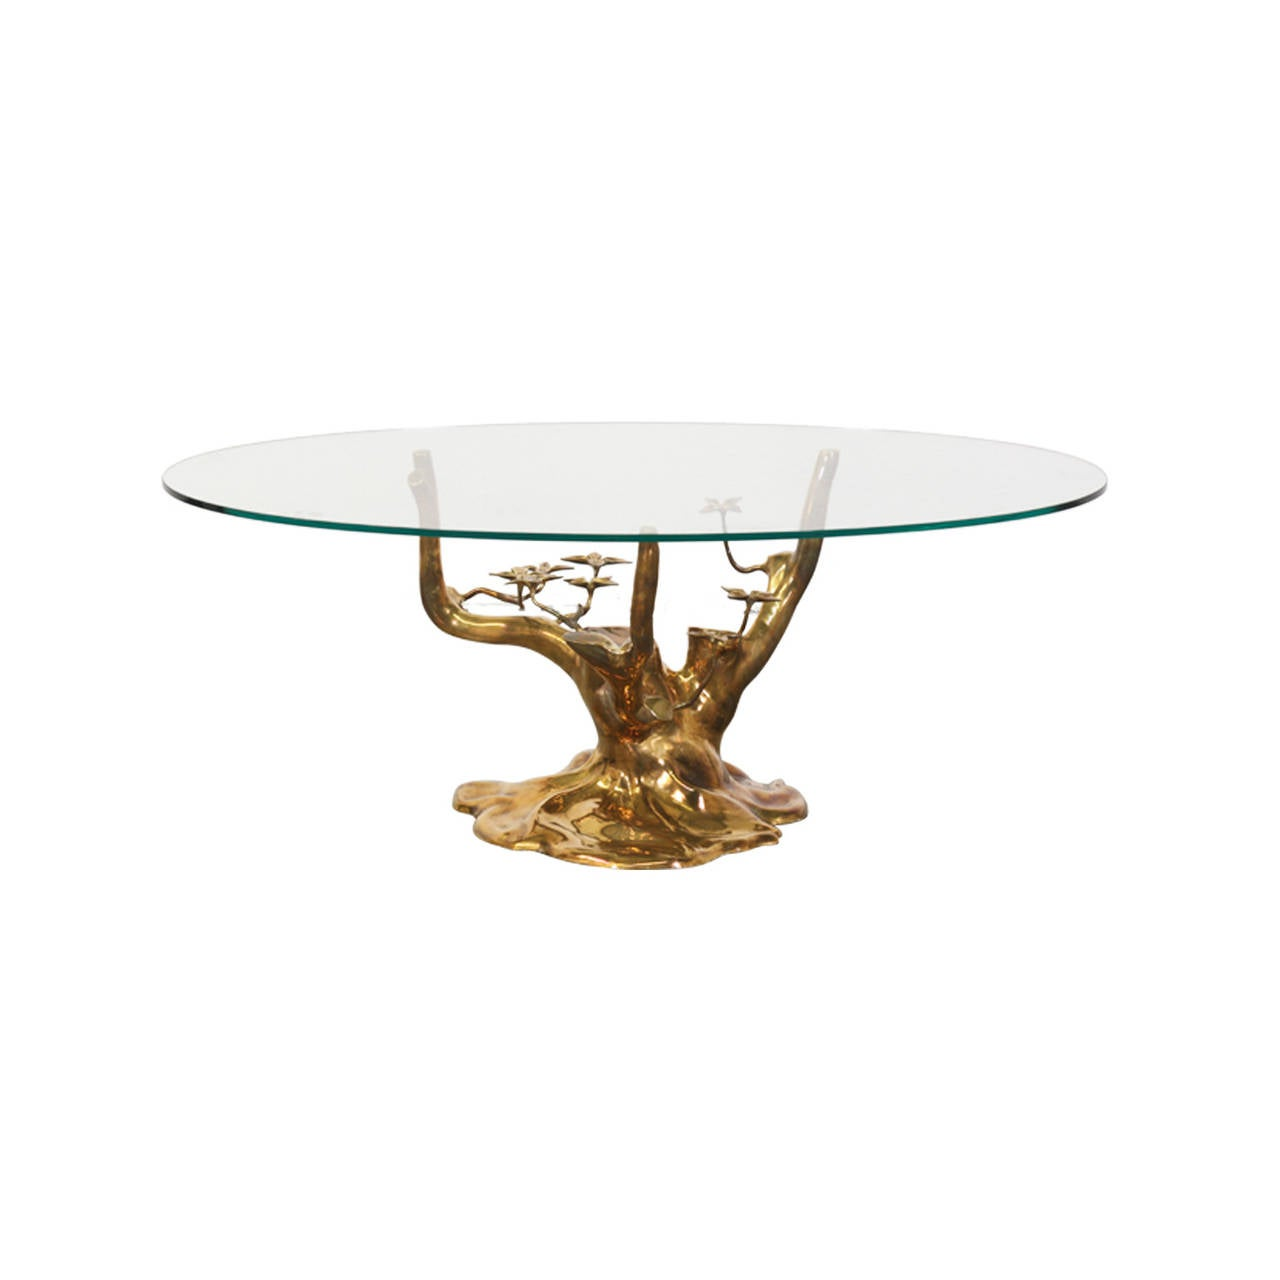 Vintage Brass Tree Sculpture Coffee Table Attributed To